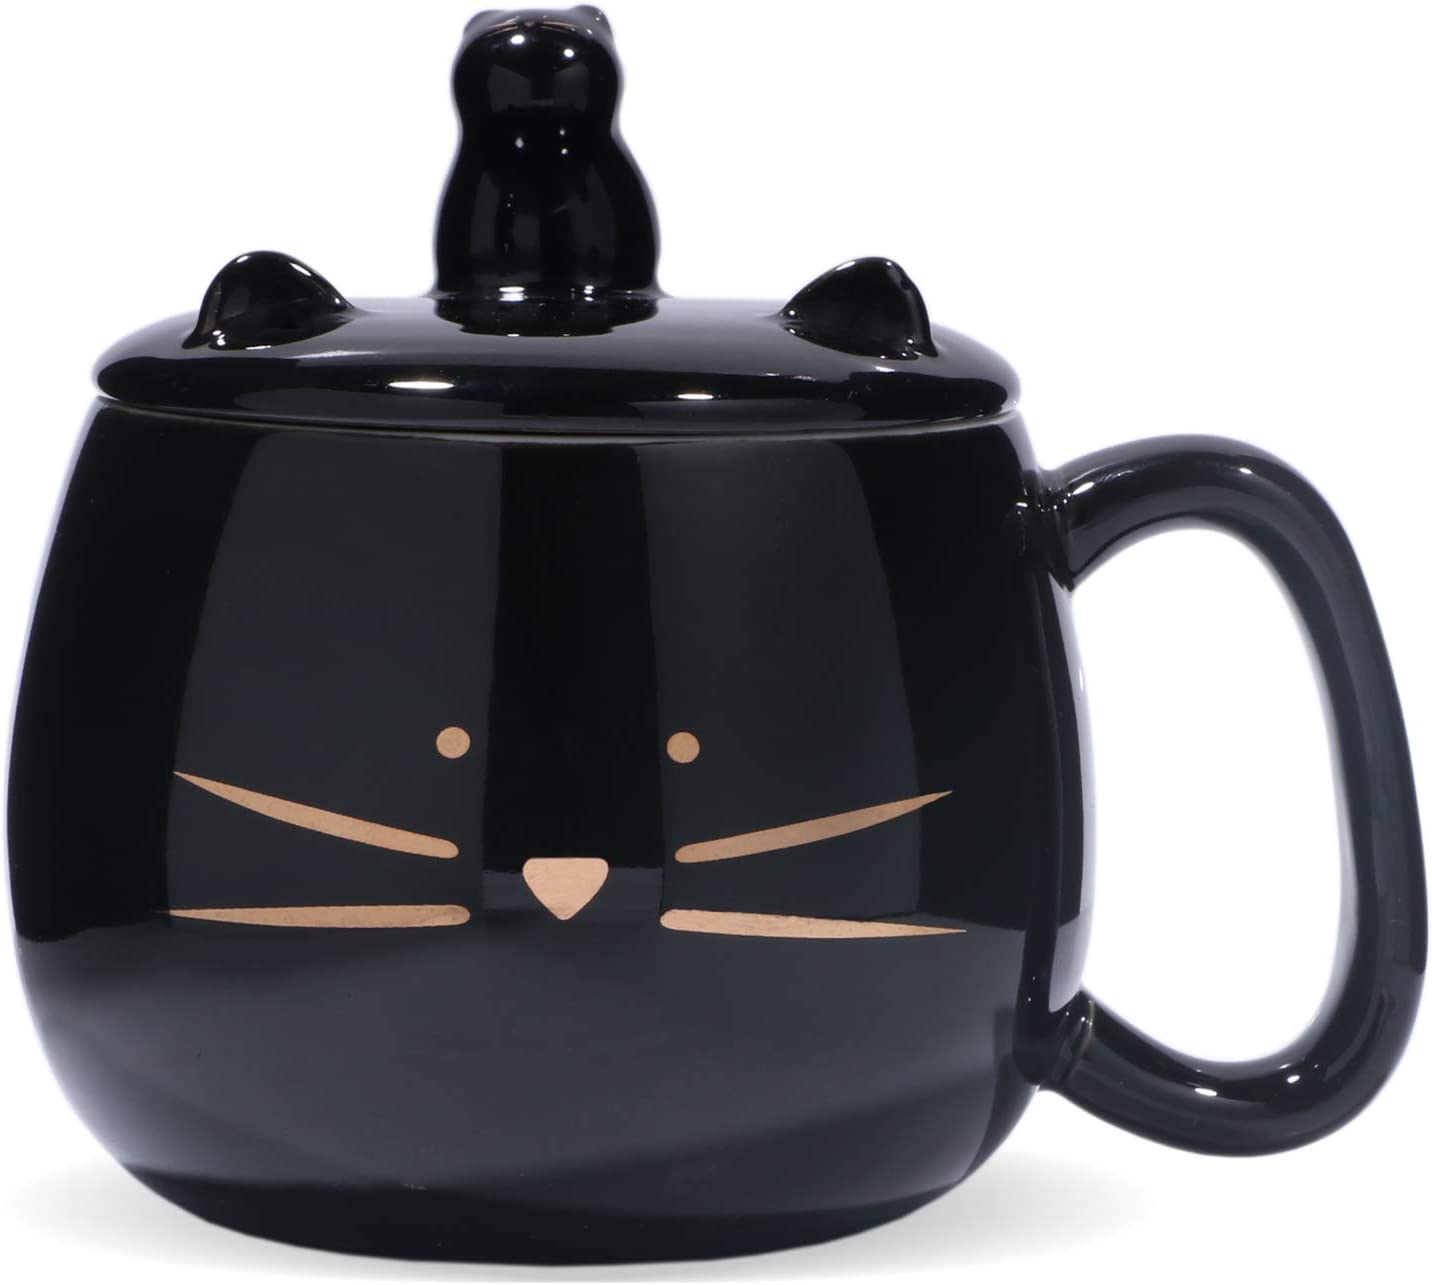 Koolkatkoo Cute Cat Coffee Mug with Cell Phone Holder Lid for Cat Lover Unique Ceramic Tea Mugs with Gold Cat Porcelain Cup Gift for Women Black